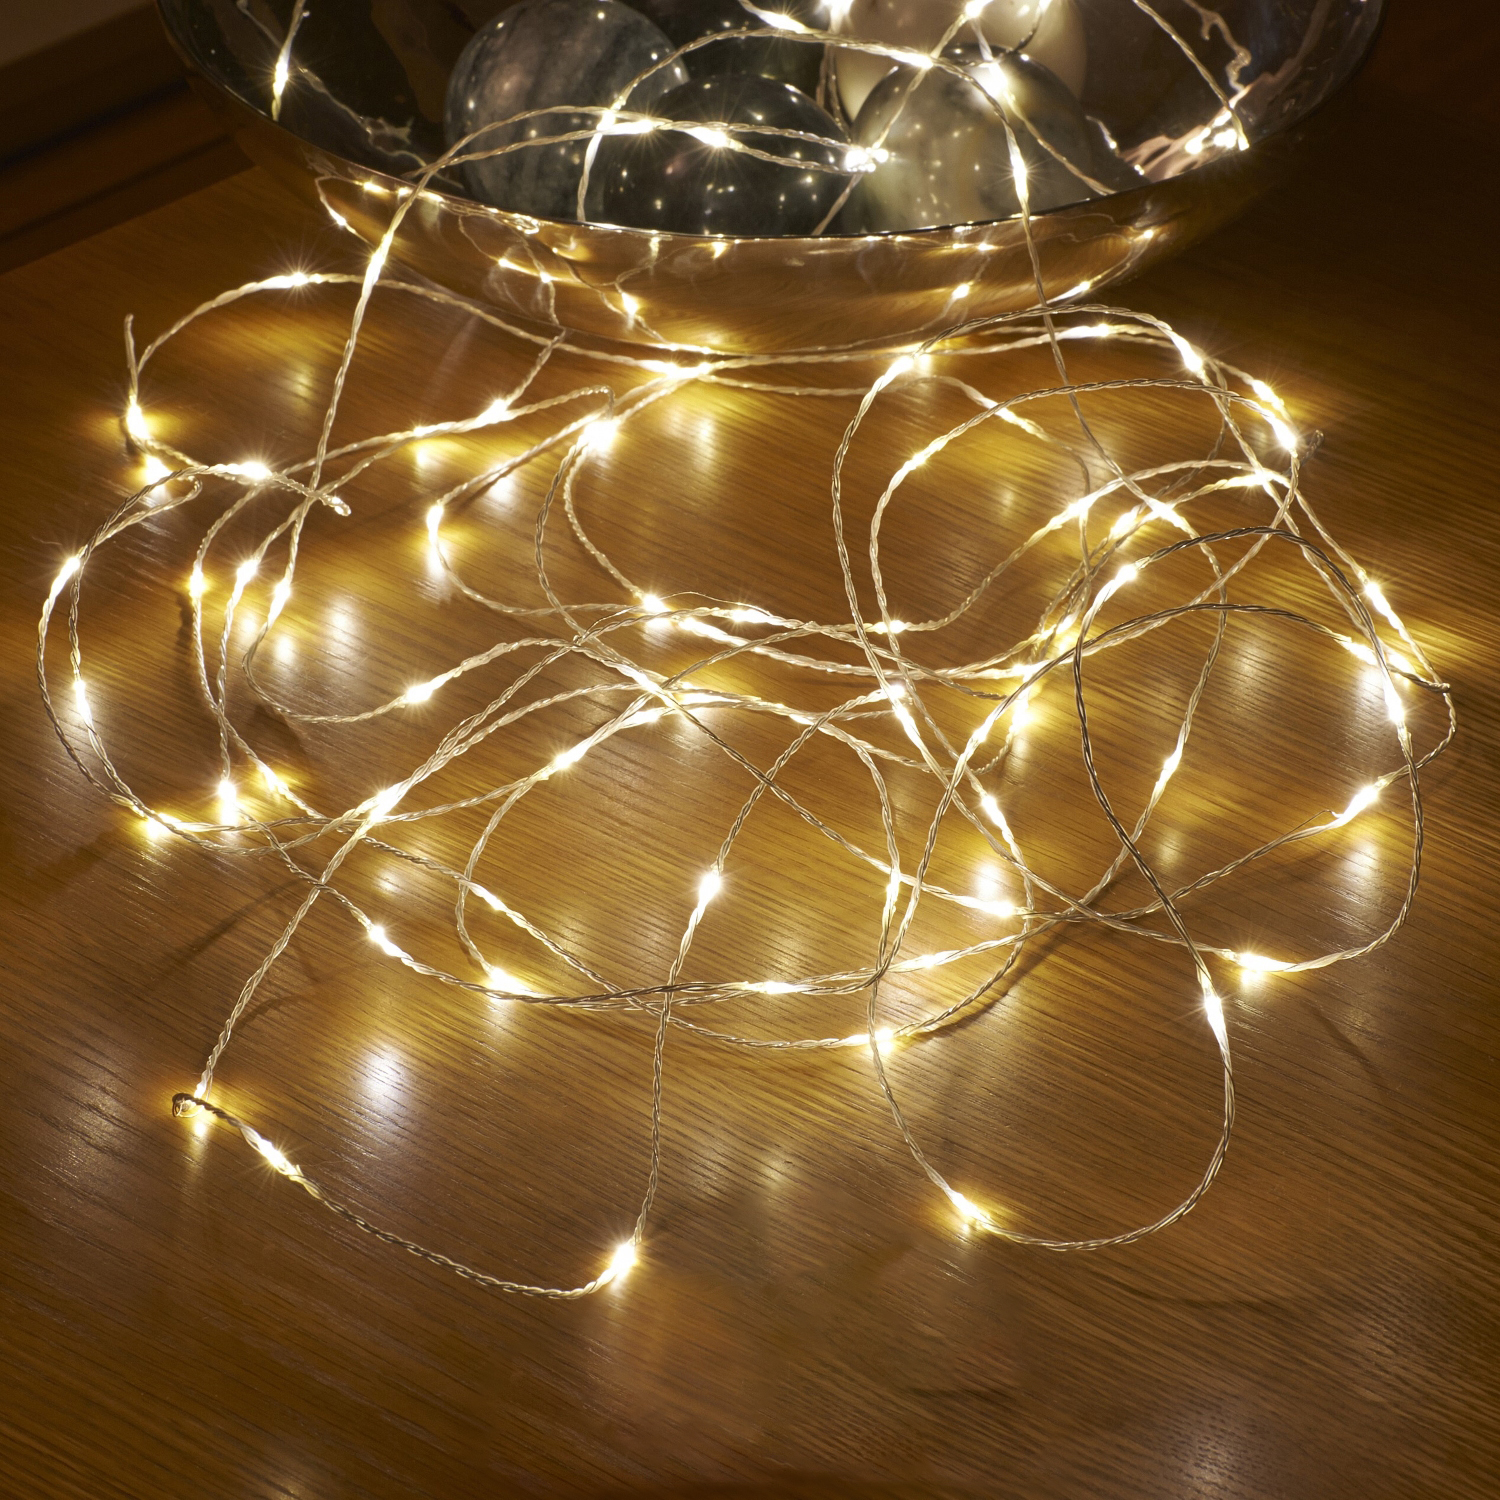 Half String Led Lights Out : Micro LED String Lights - Battery Operated - Remote Controlled - Outdoor - 5M - Auraglow LED ...